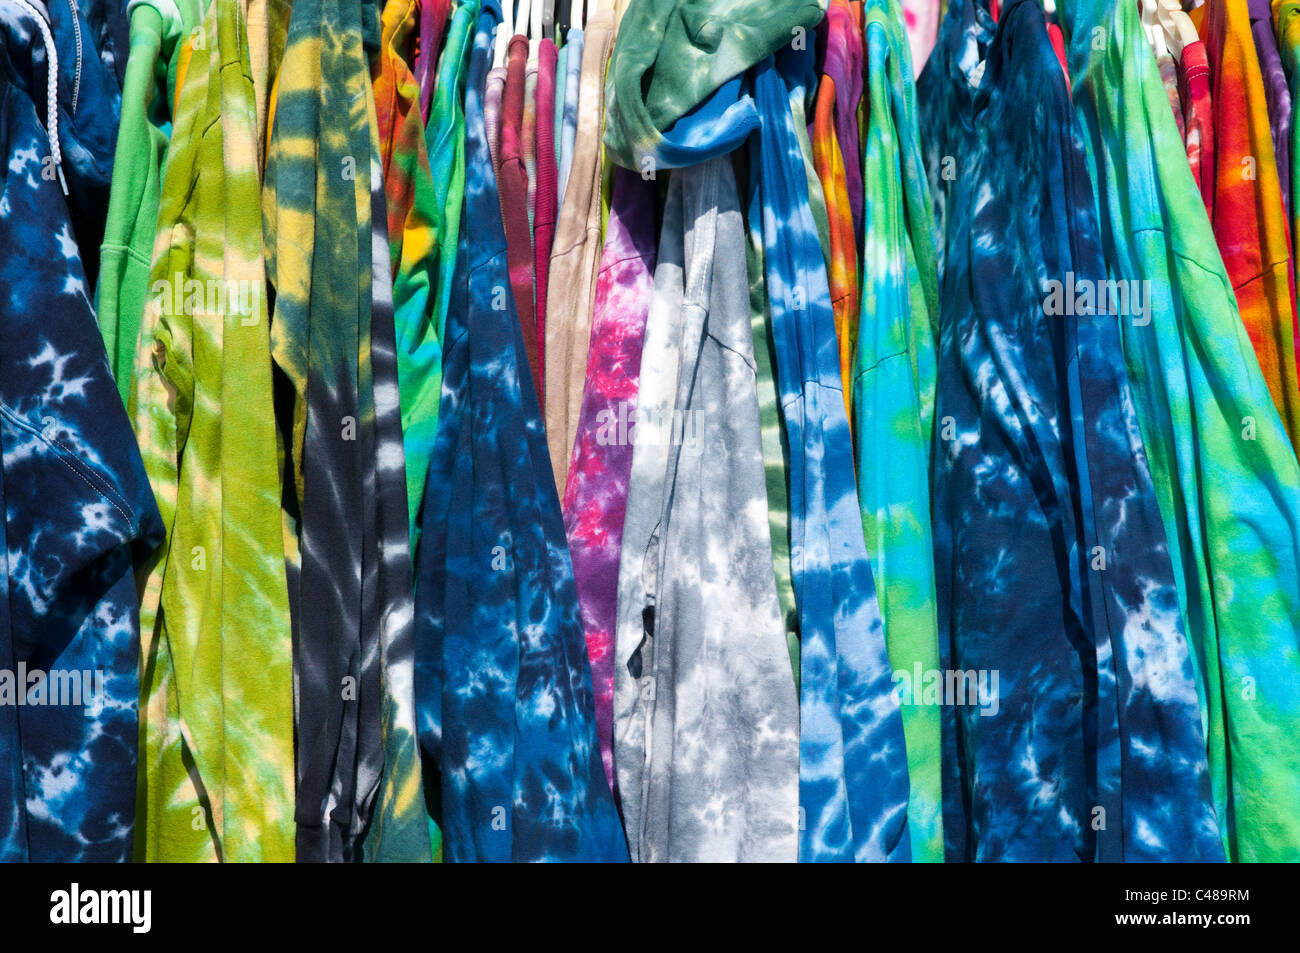 9f6b817f Tie Dye Clothing Stock Photos & Tie Dye Clothing Stock Images - Alamy